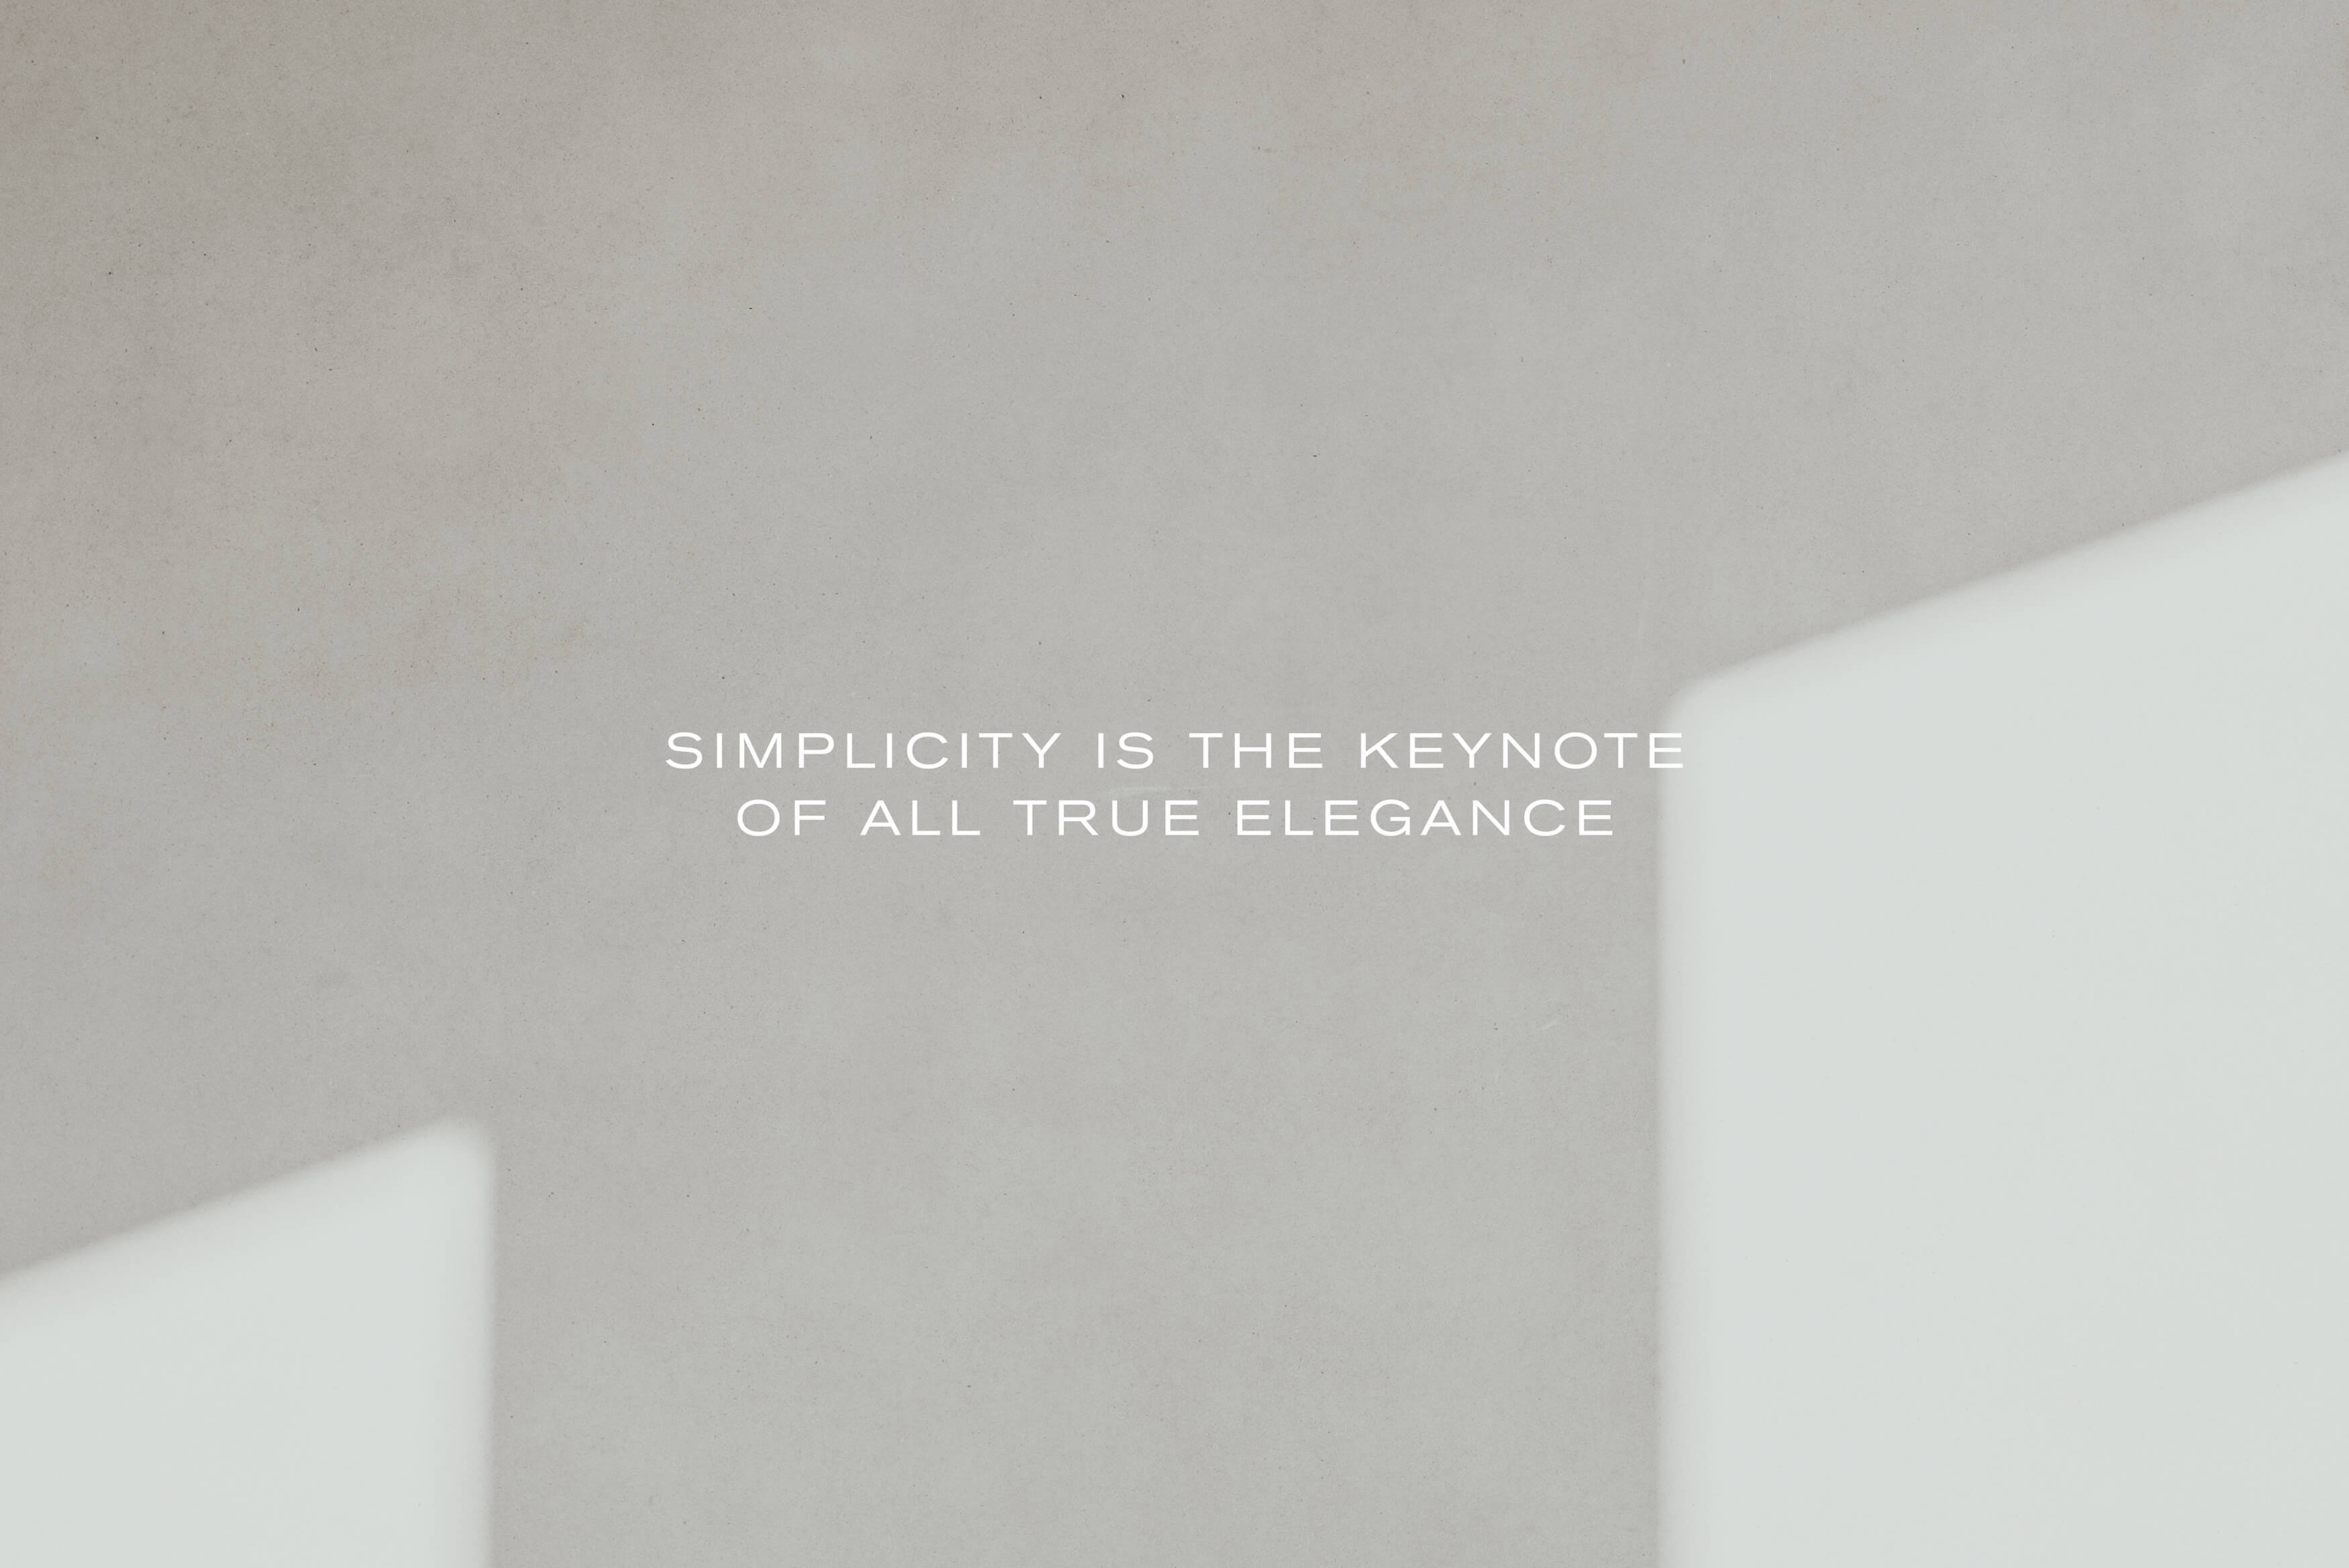 Stafford Architecture - Brand Statement, Simplicity is the keynote of all true elegance